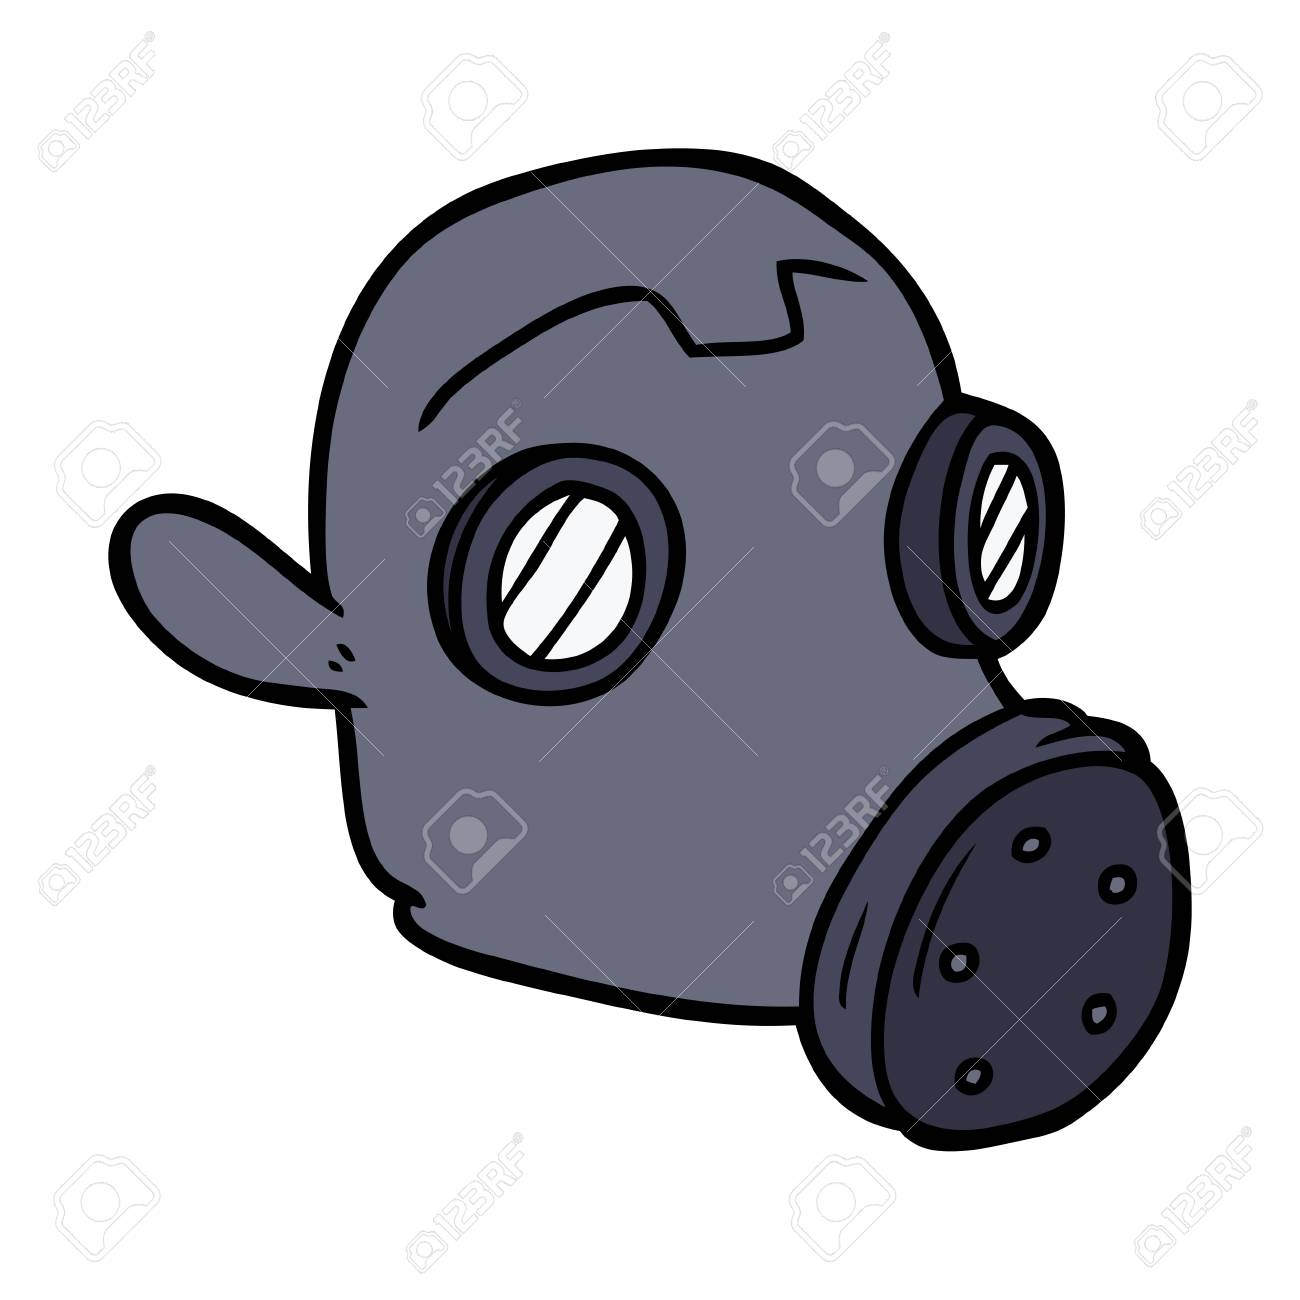 cartoon gas mask vector illustration royalty free cliparts vectors rh 123rf com cartoon gas mask ww1 cartoon pic of gas mask